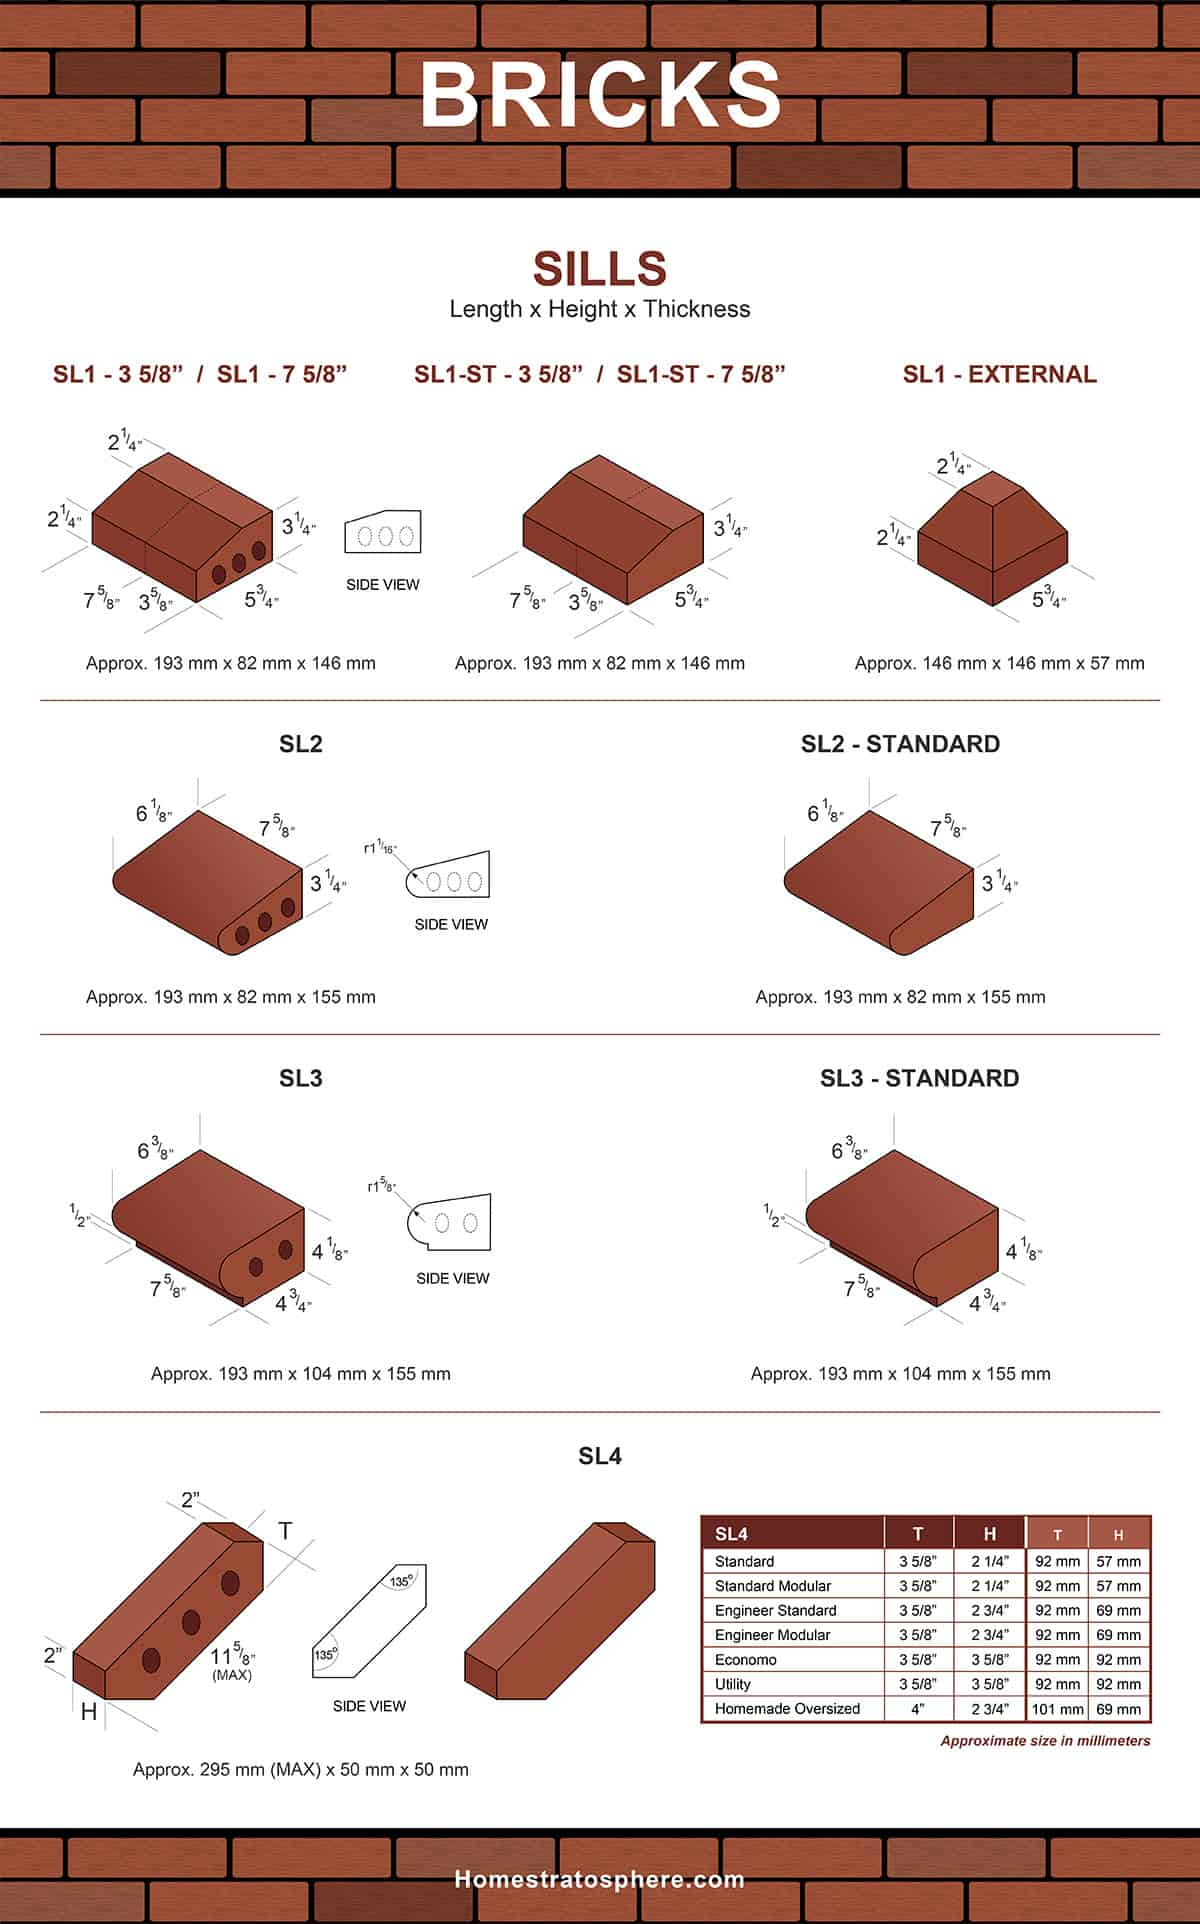 Sill Bricks - shapes and dimensions chart